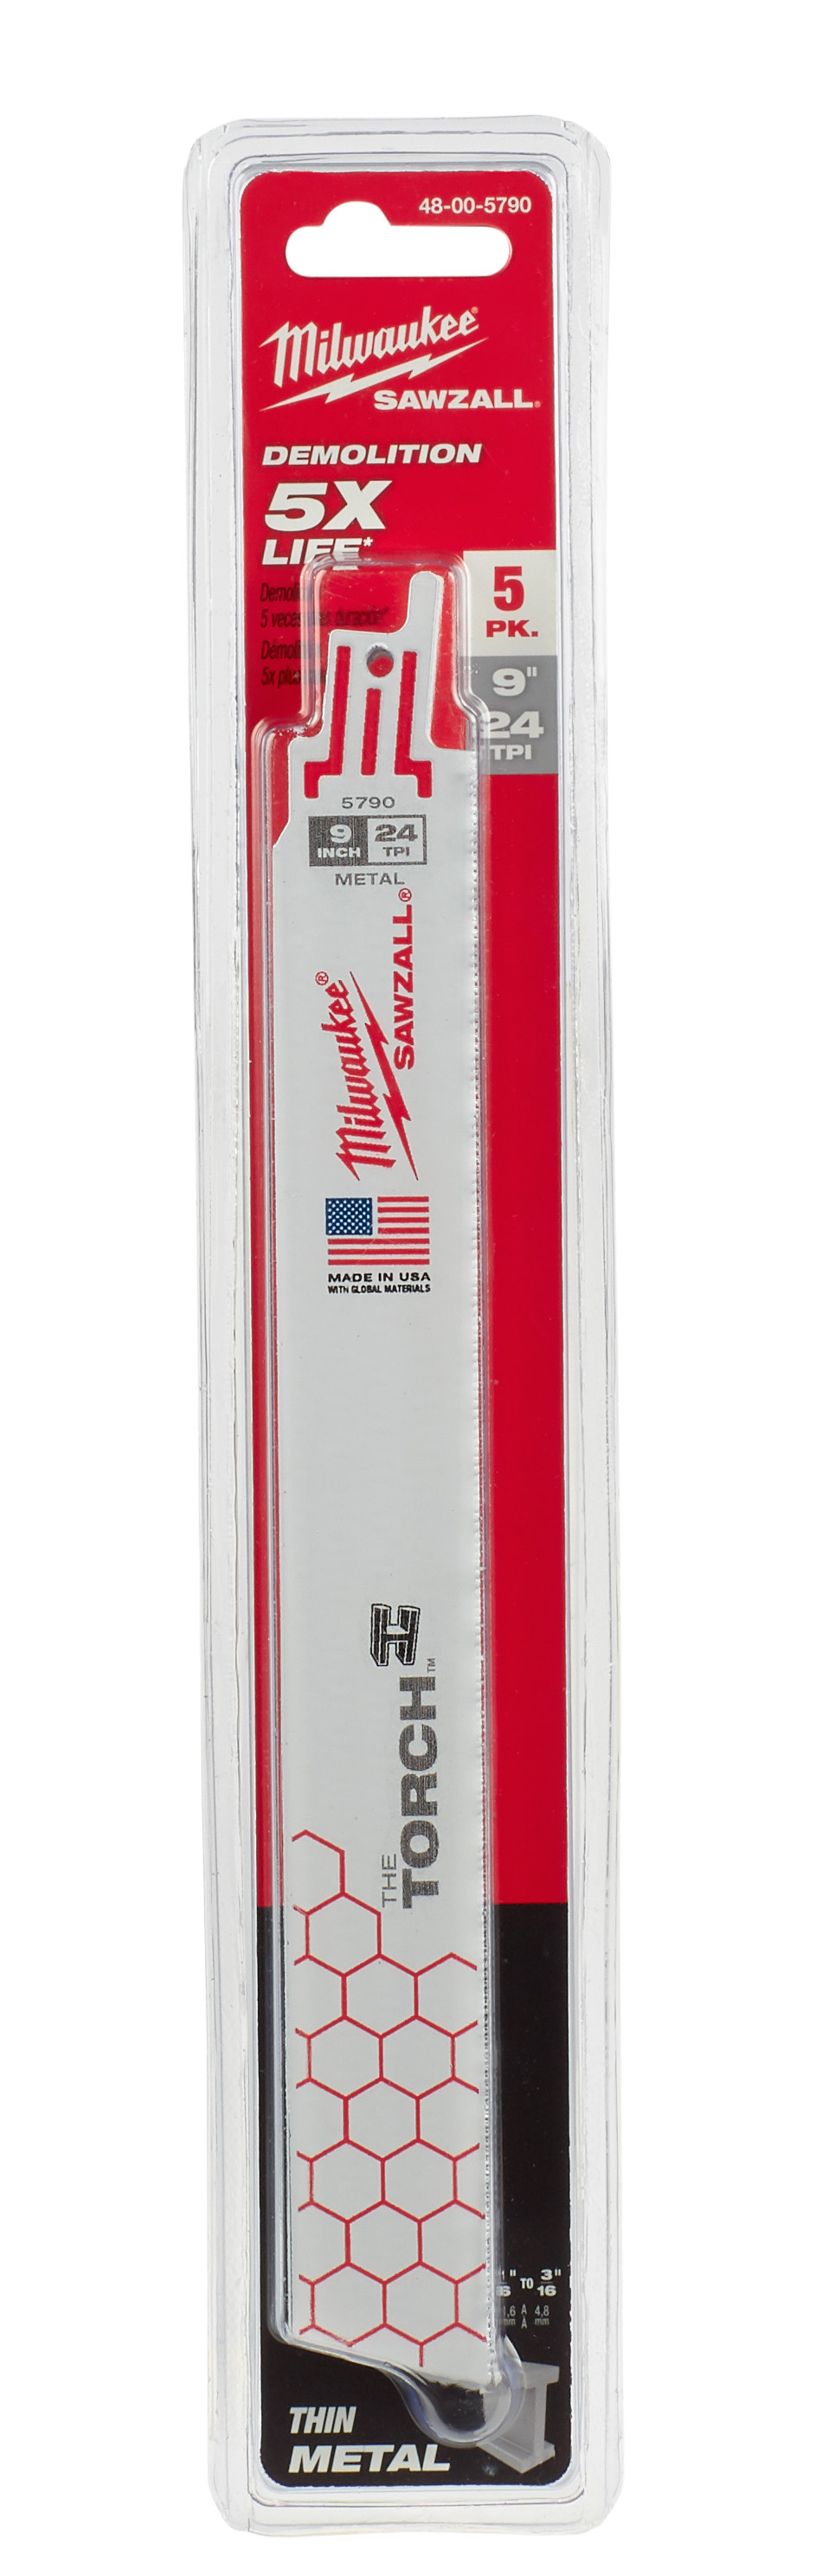 Milwaukee® SAWZALL™ 48-00-5790 Double Duty Straight Back Reciprocating Saw Blade, 9 in L x 1 in W, 24, Bi-Metal Body, Toothed Edge/Universal Tang